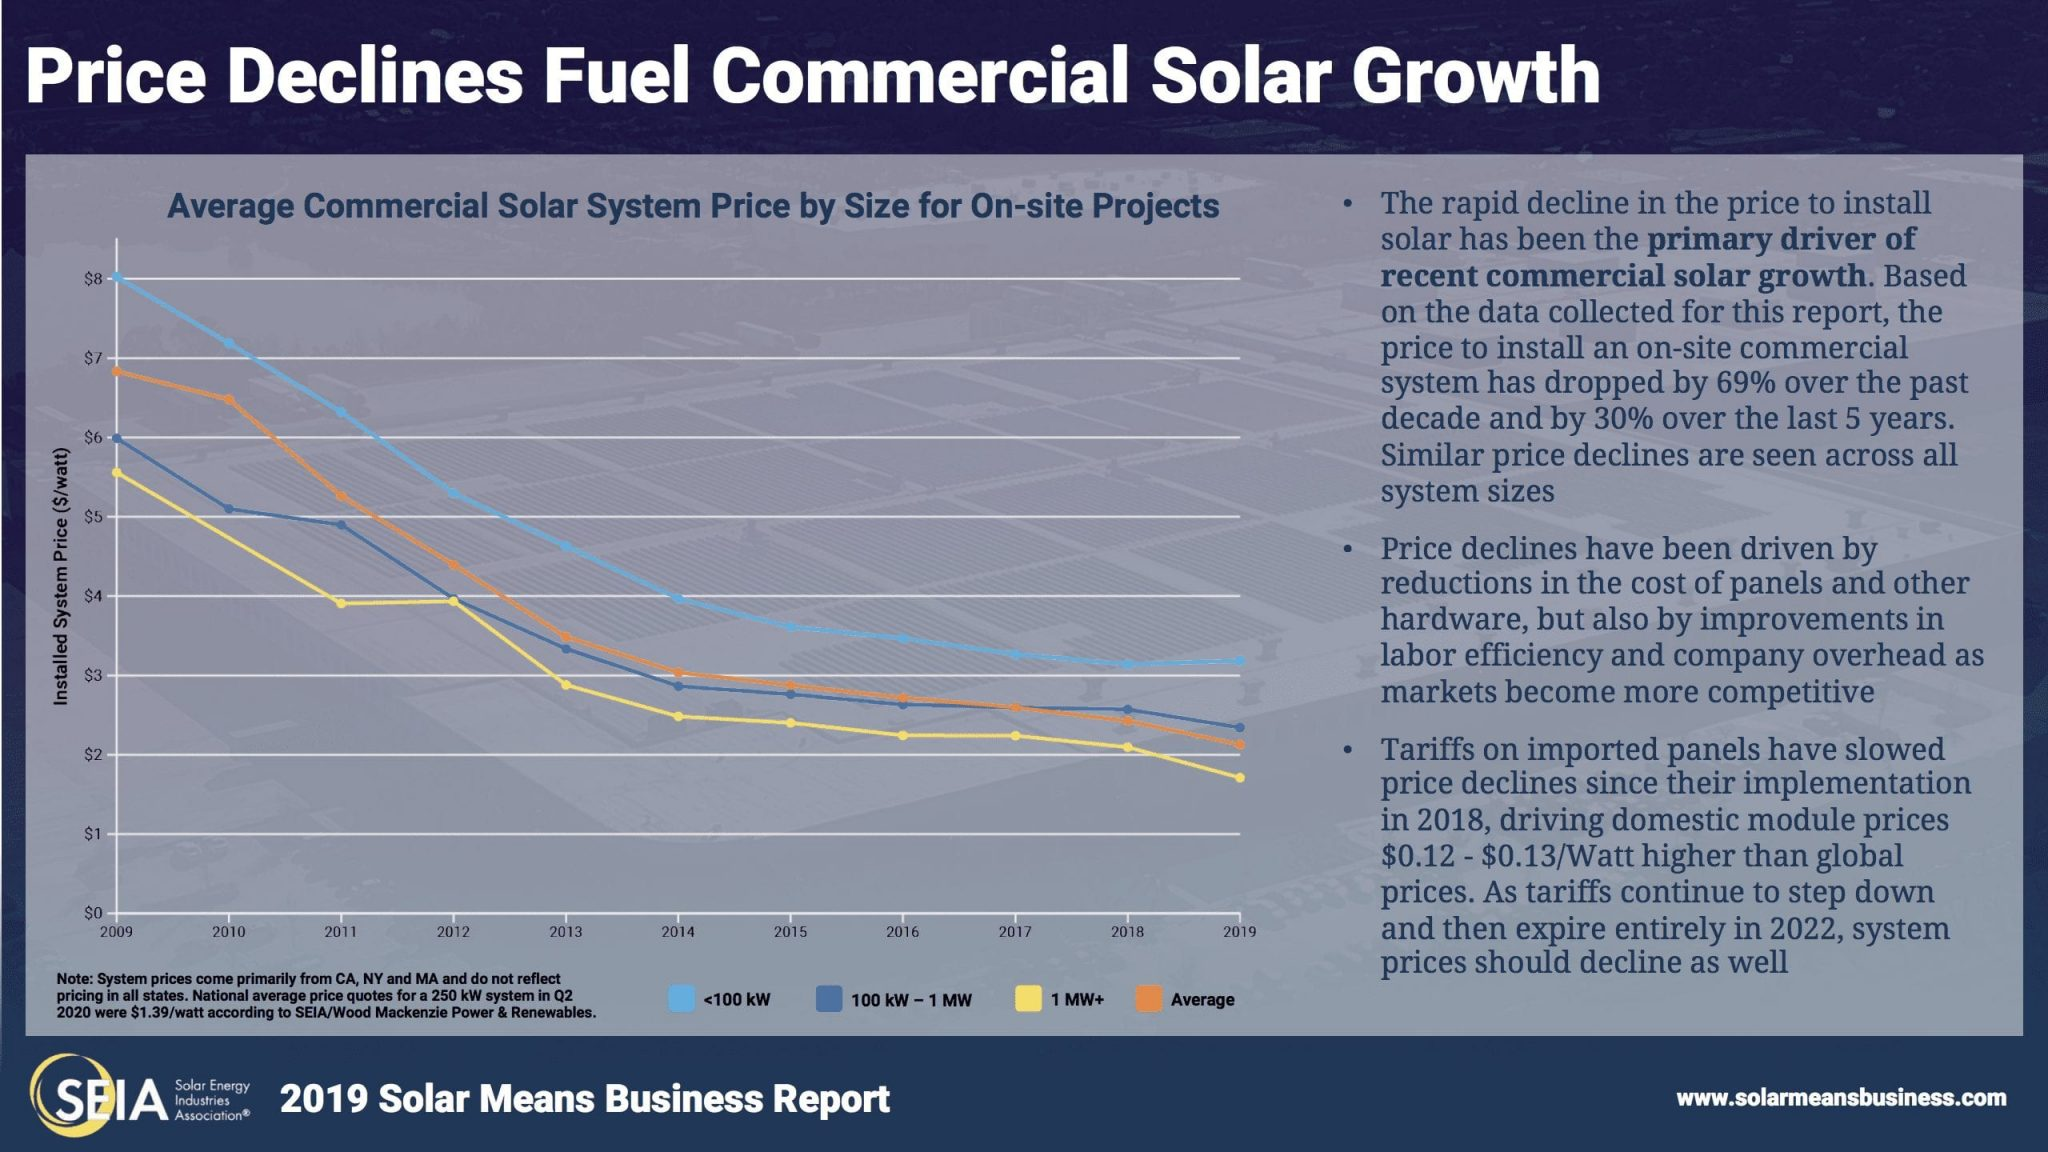 SEIA 2019 Solar Means Business Decline of Solar Costs